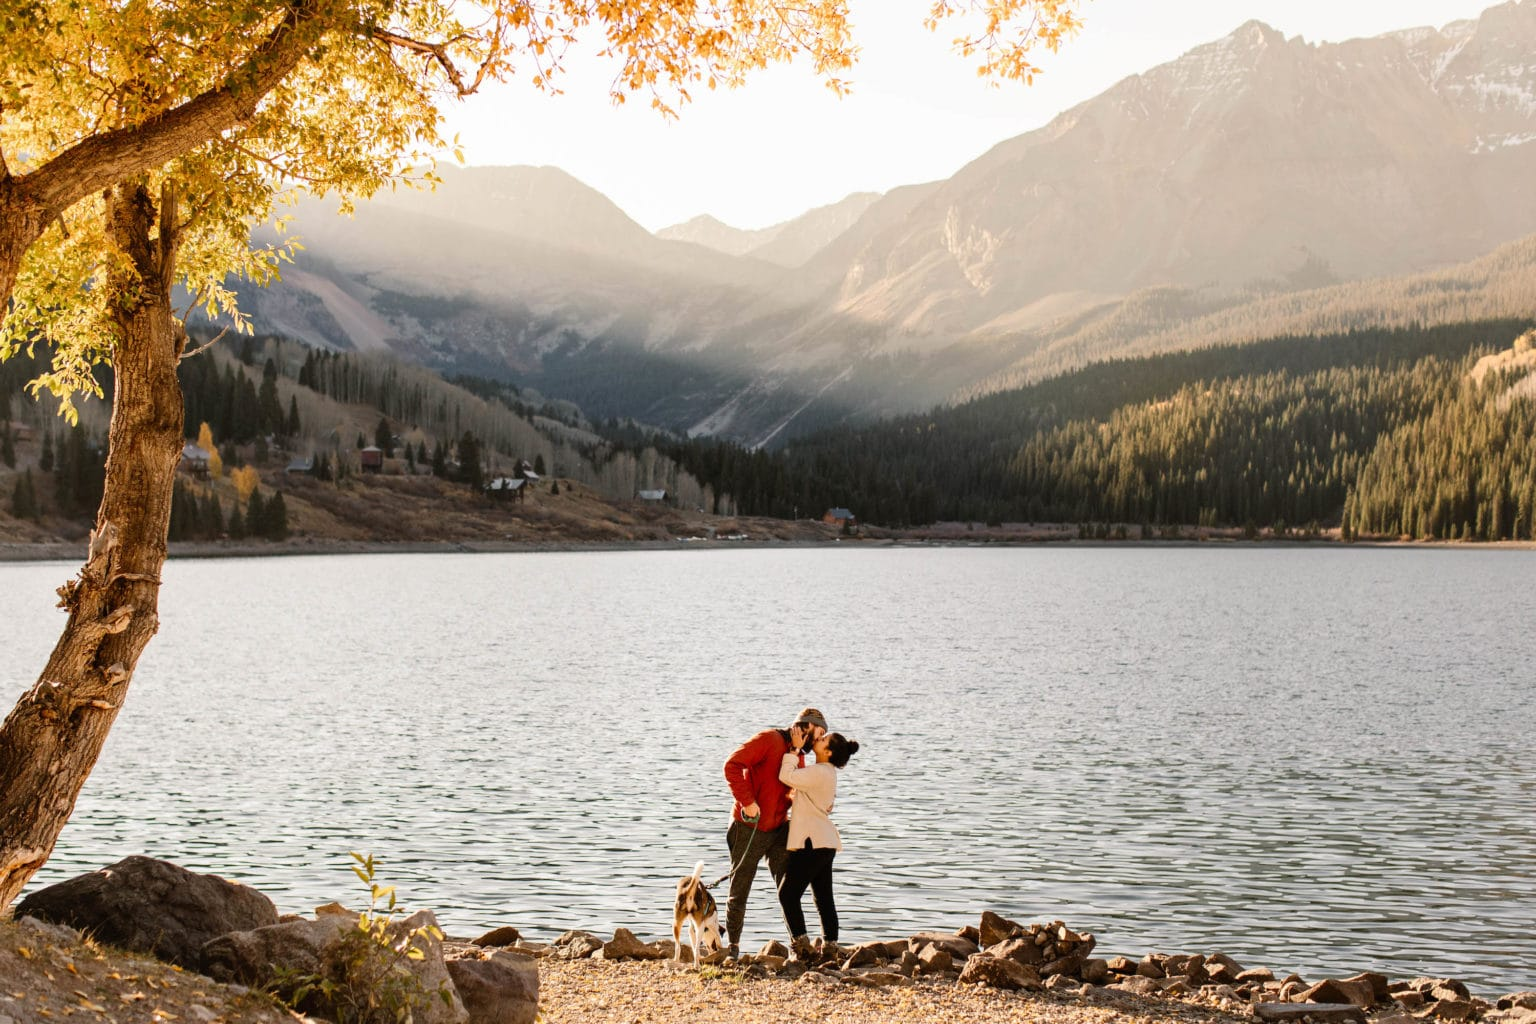 romantic and cute fall date ideas for cozy time together